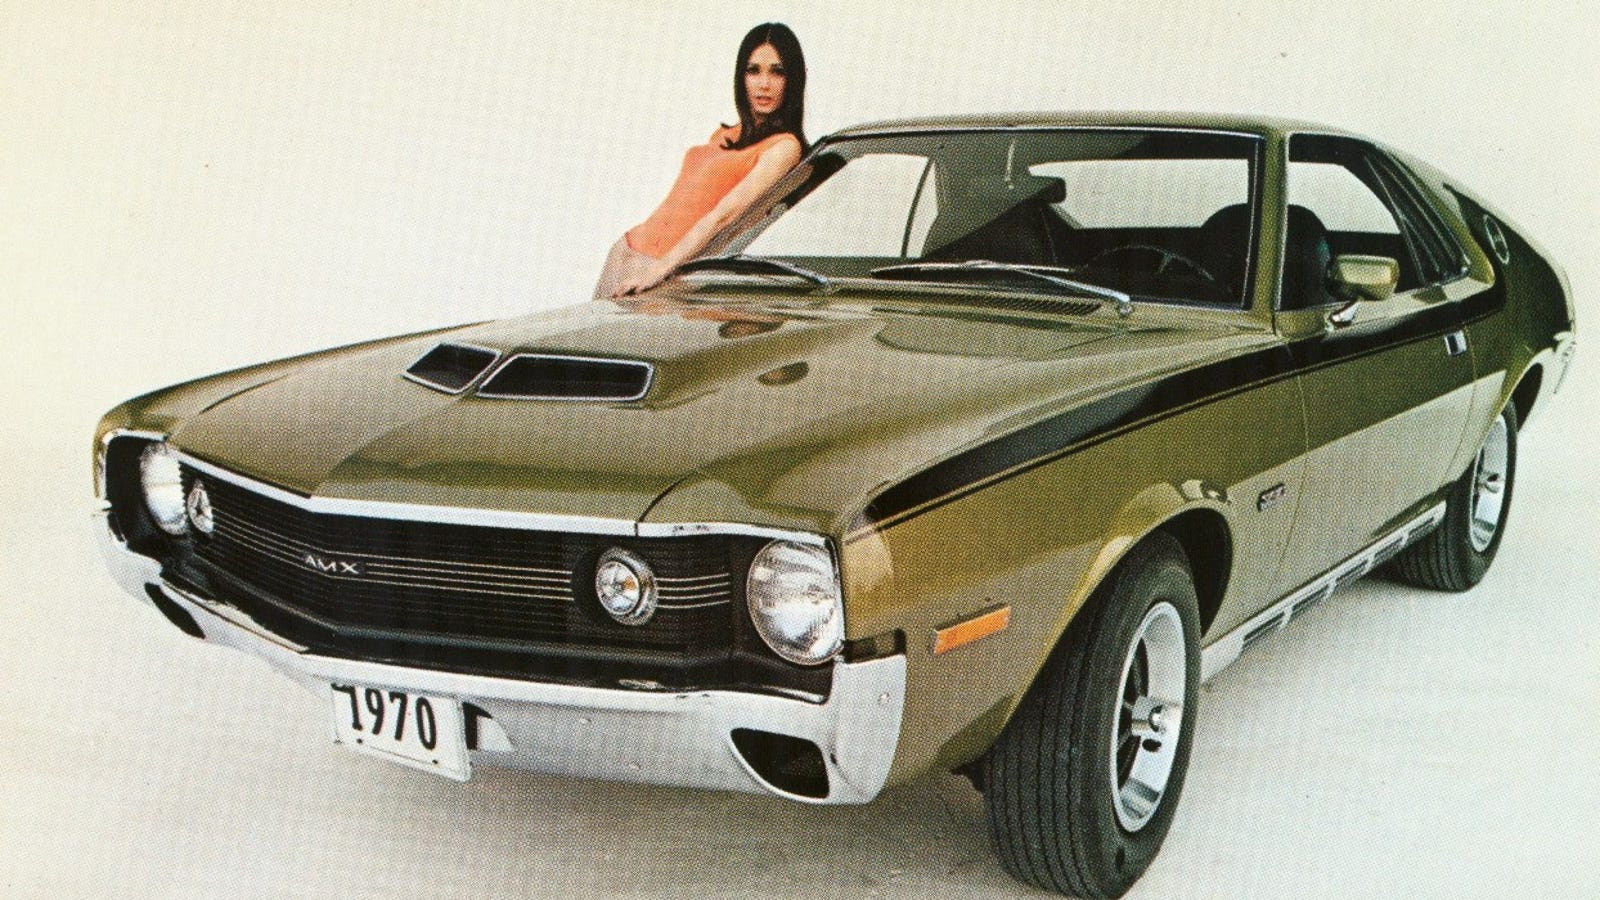 What's The Most Underrated American Muscle Car?